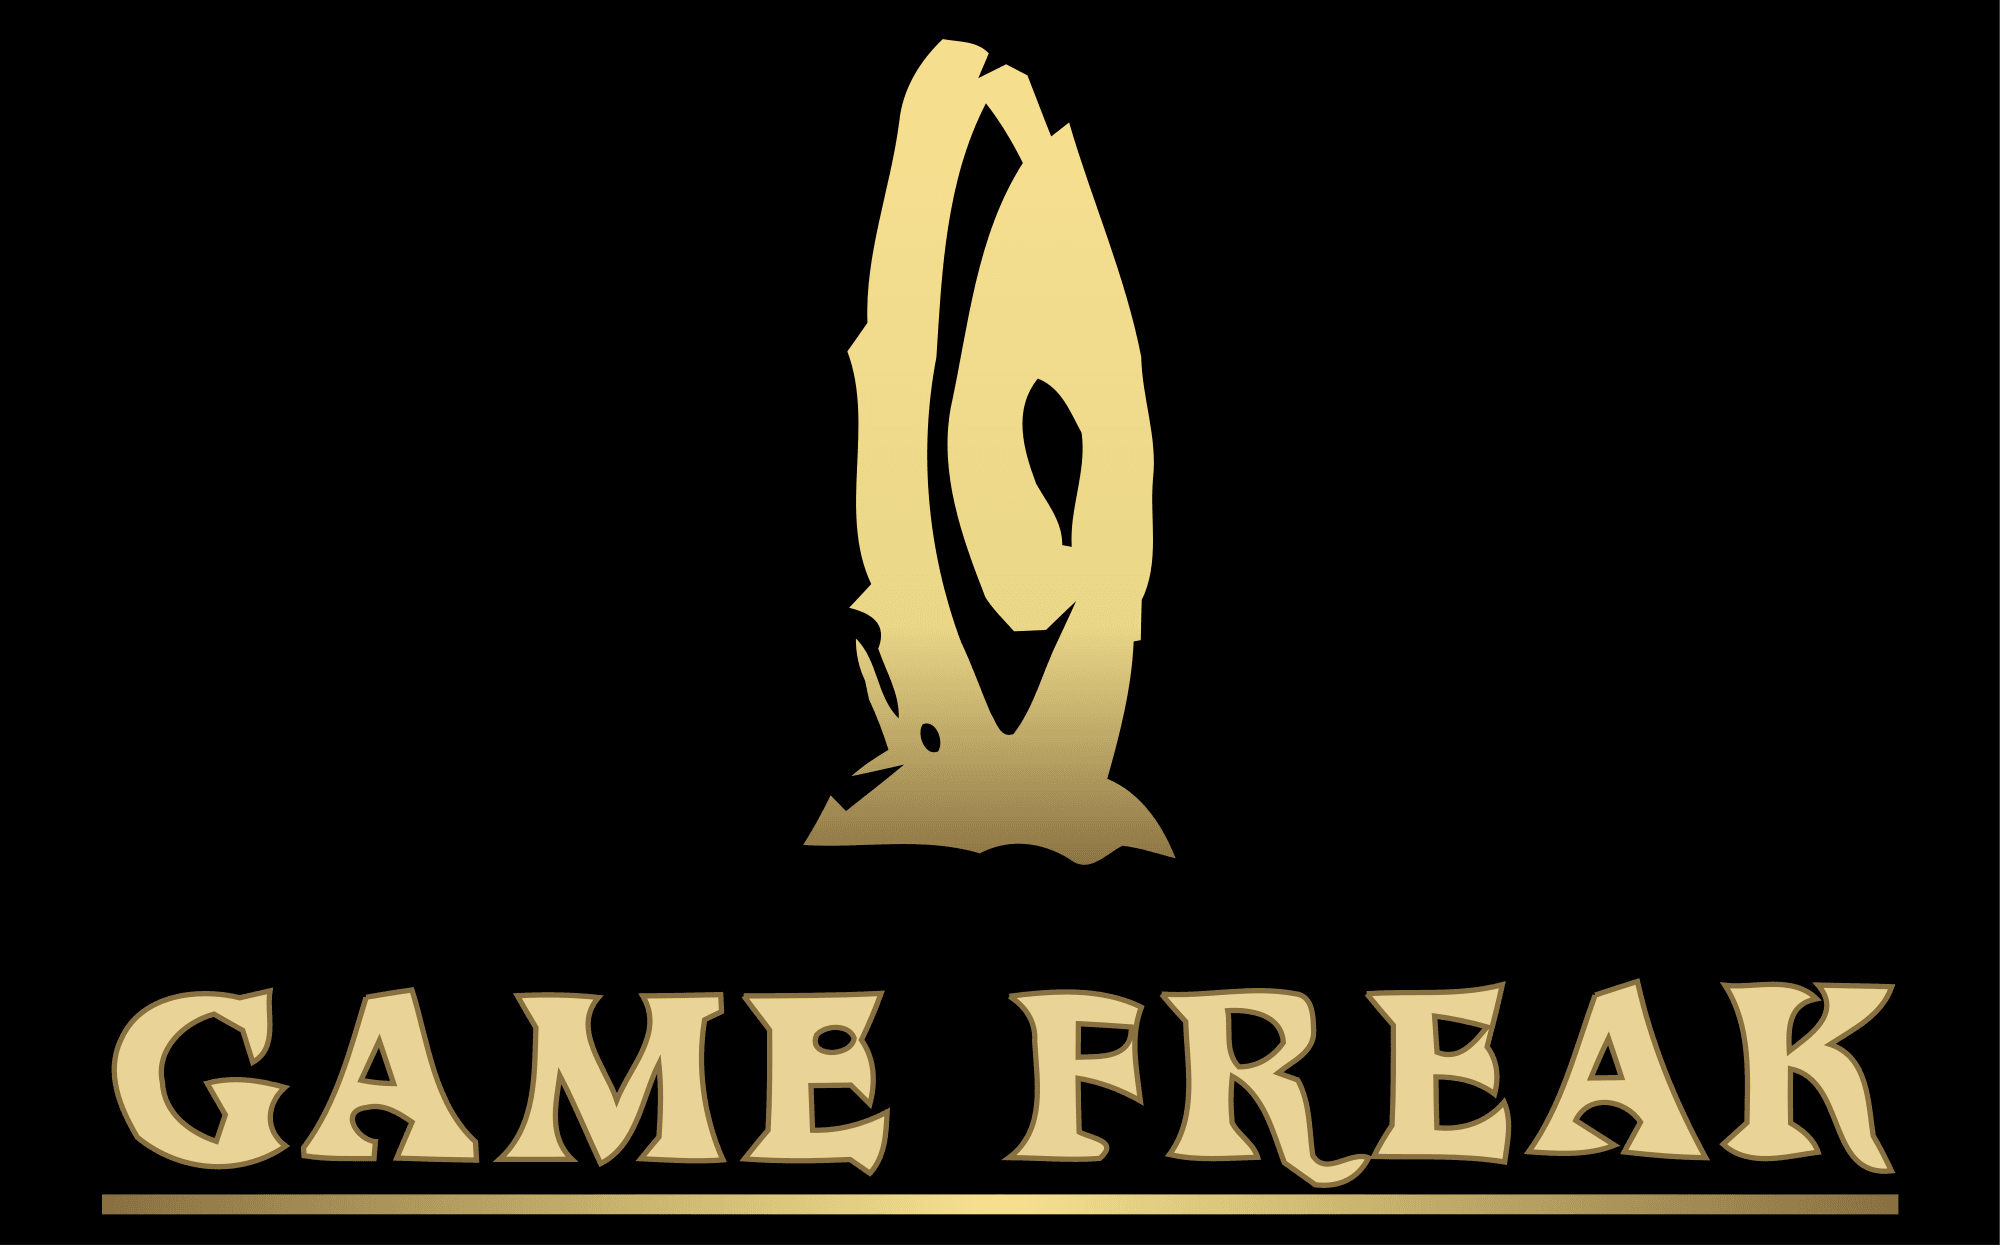 Freaks 4u Gaming Wikipedia